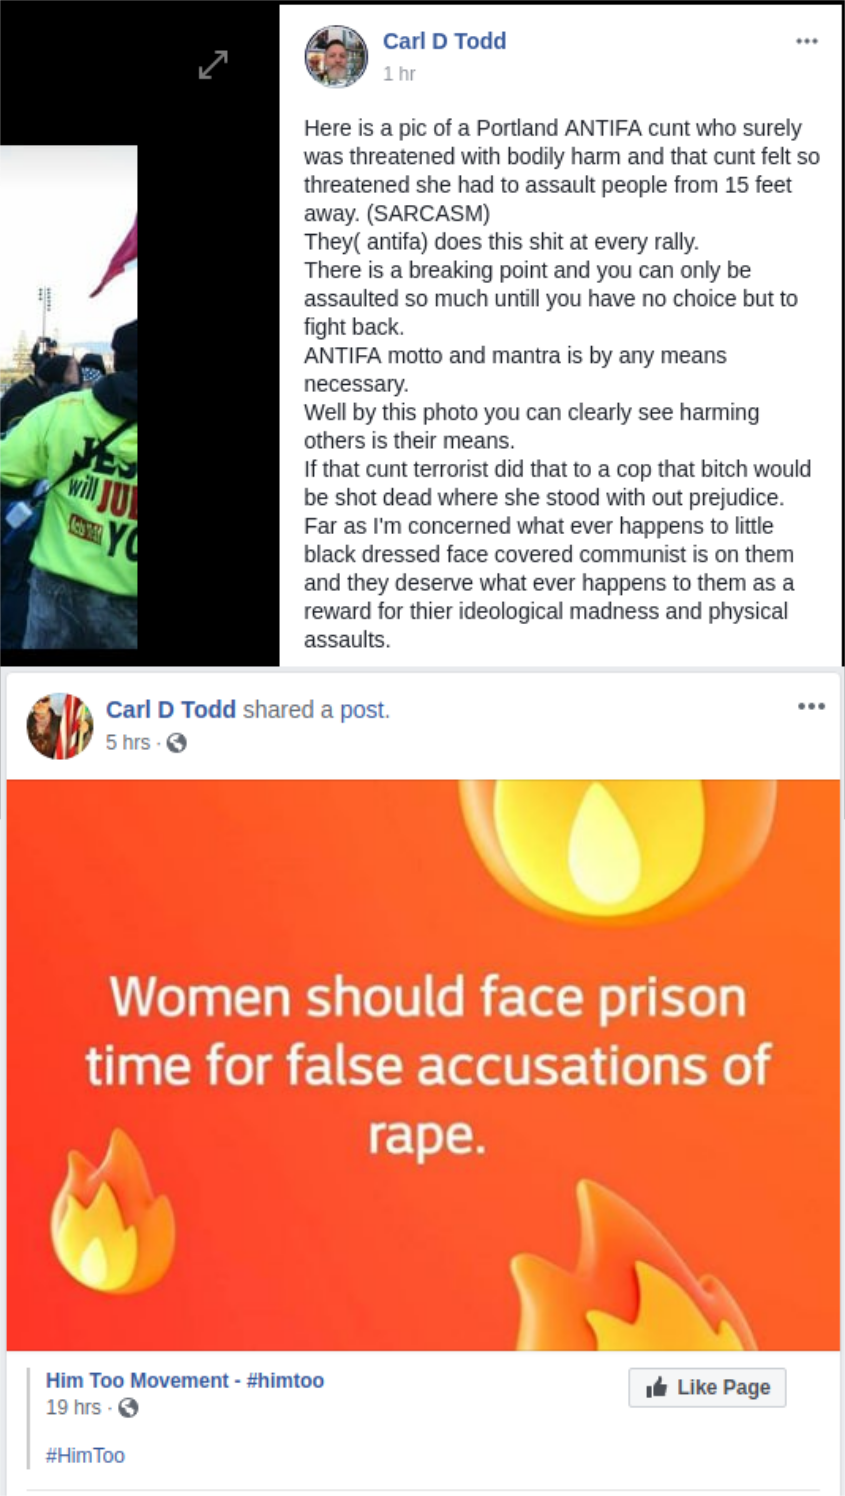 Carl D Todd is a misogynist